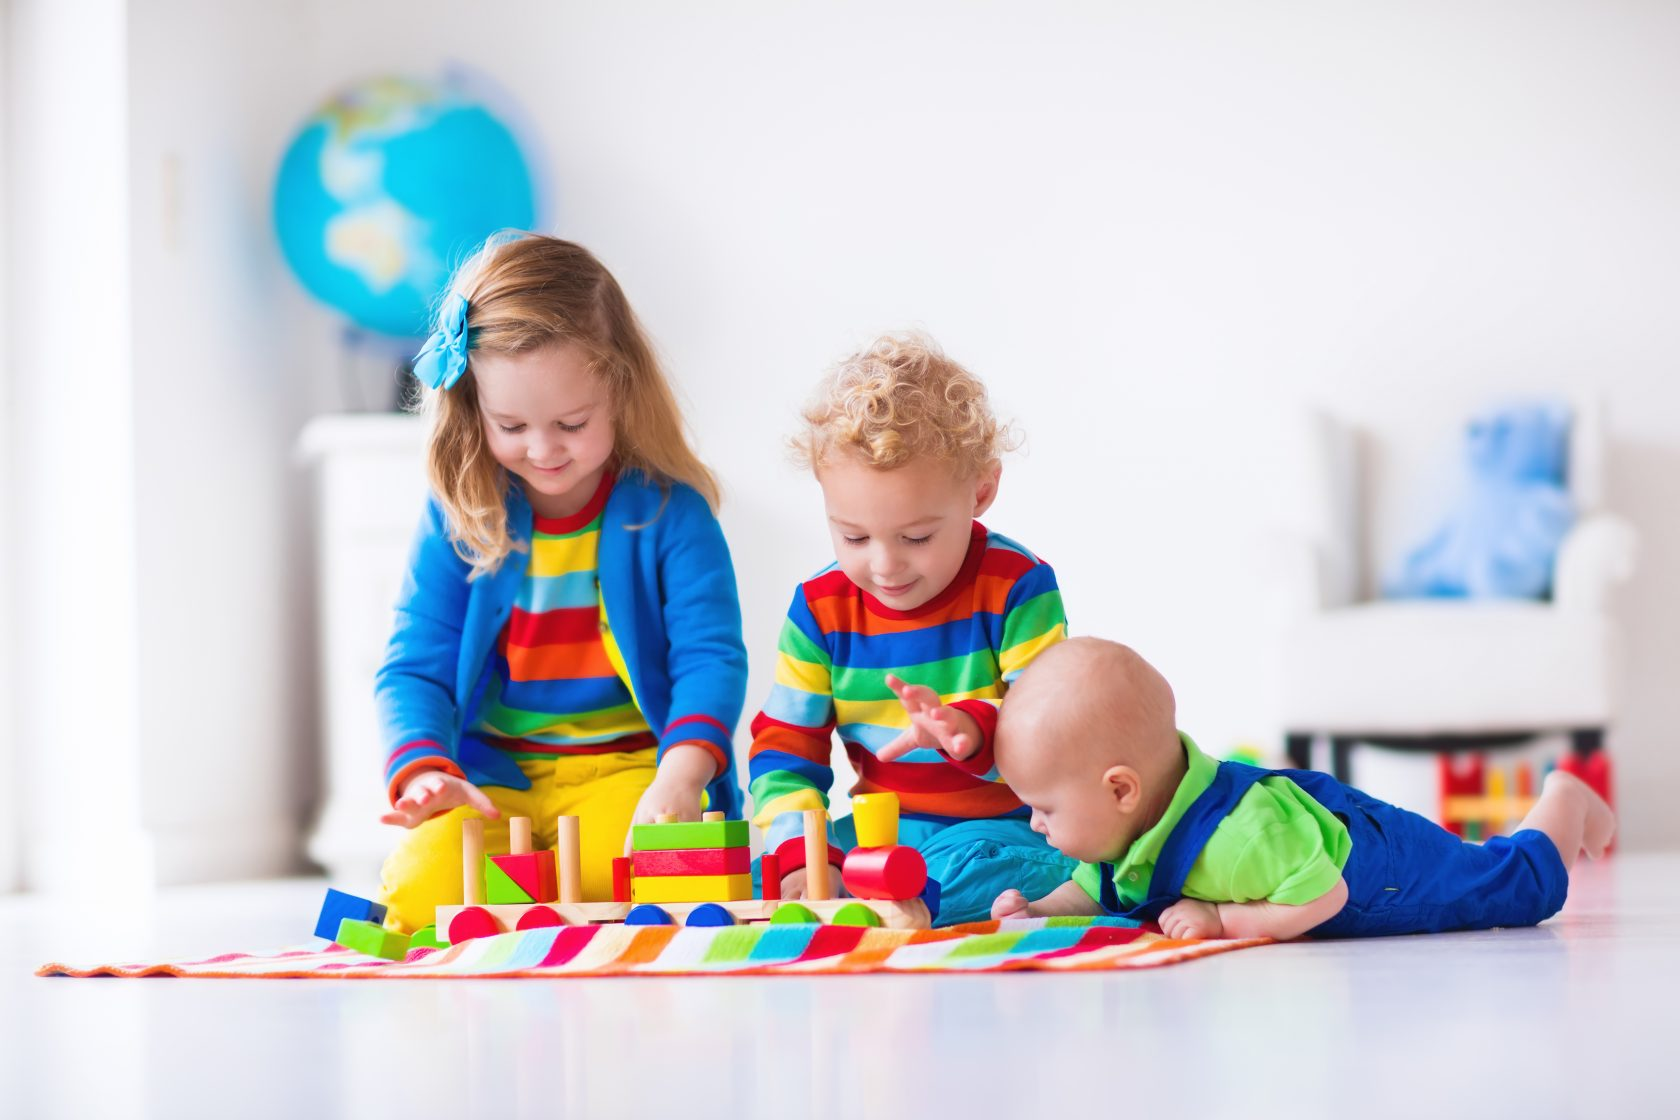 Children playing with wooden train. Toddler kid and baby play with blocks, trains and cars. Educational toys for preschool and kindergarten child. Boy and girl build toy railroad at home or daycare.